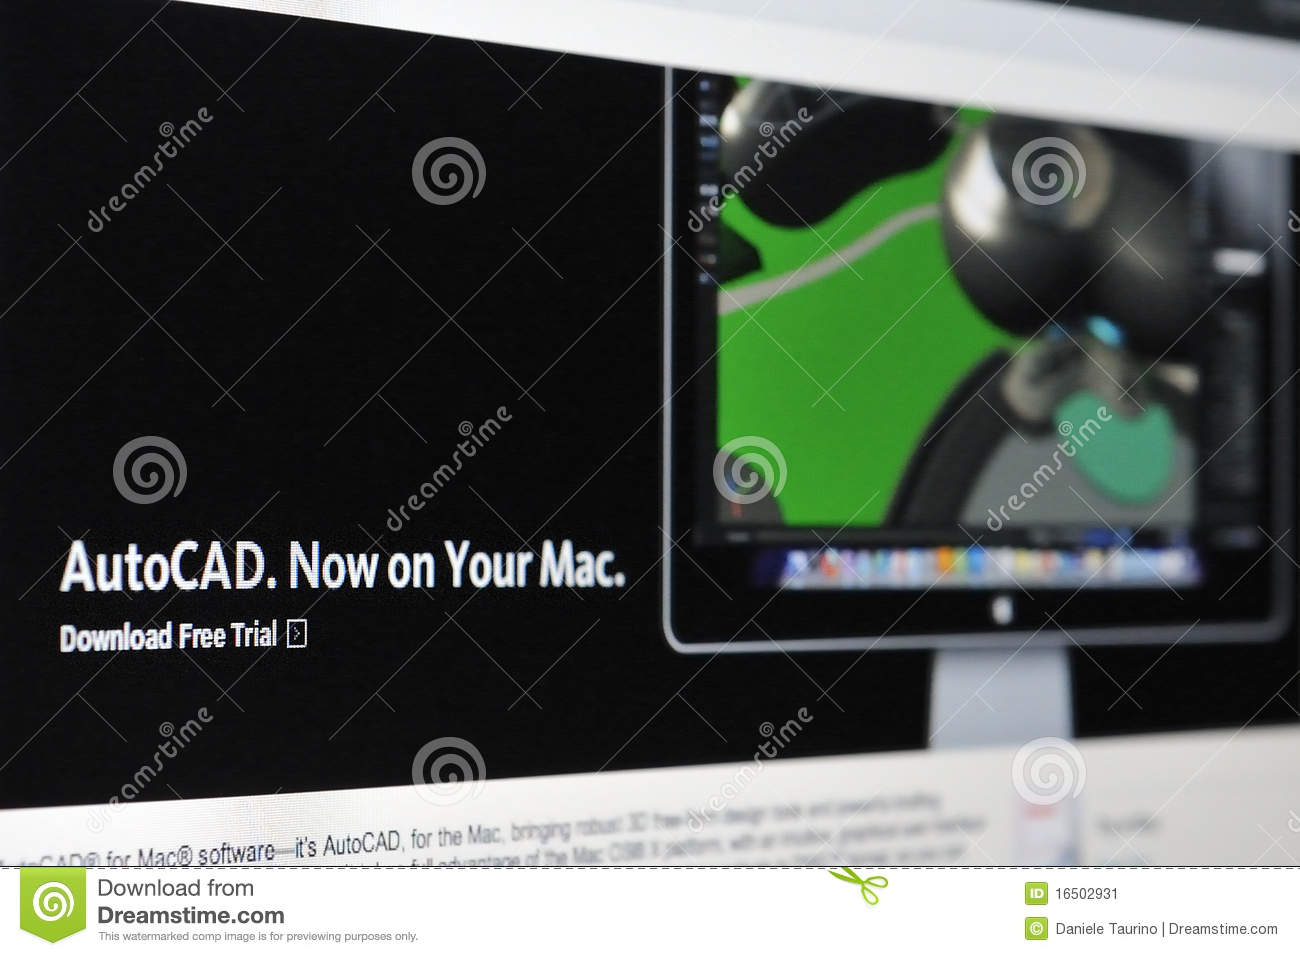 how to download autocad for free on mac